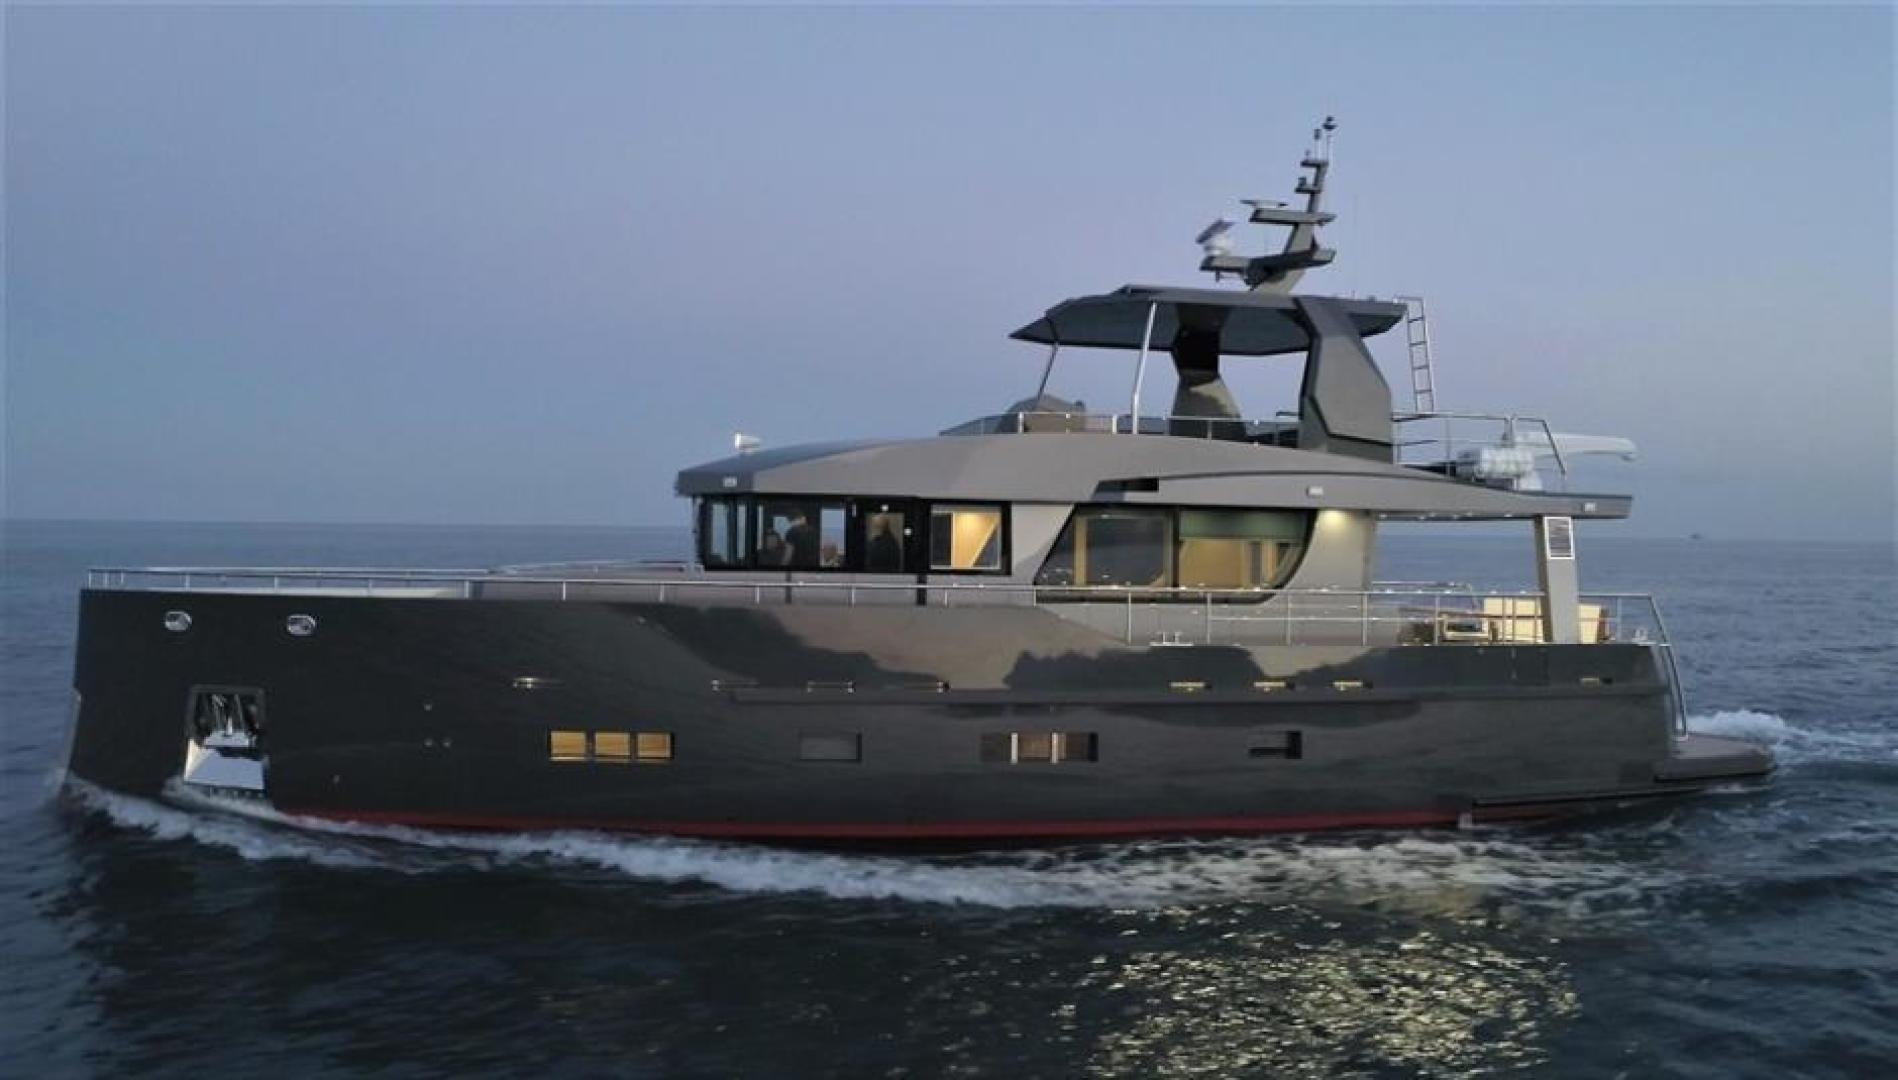 Bering-Expedition Yacht 2019-Expedition Yacht Turkey-1405105   Thumbnail